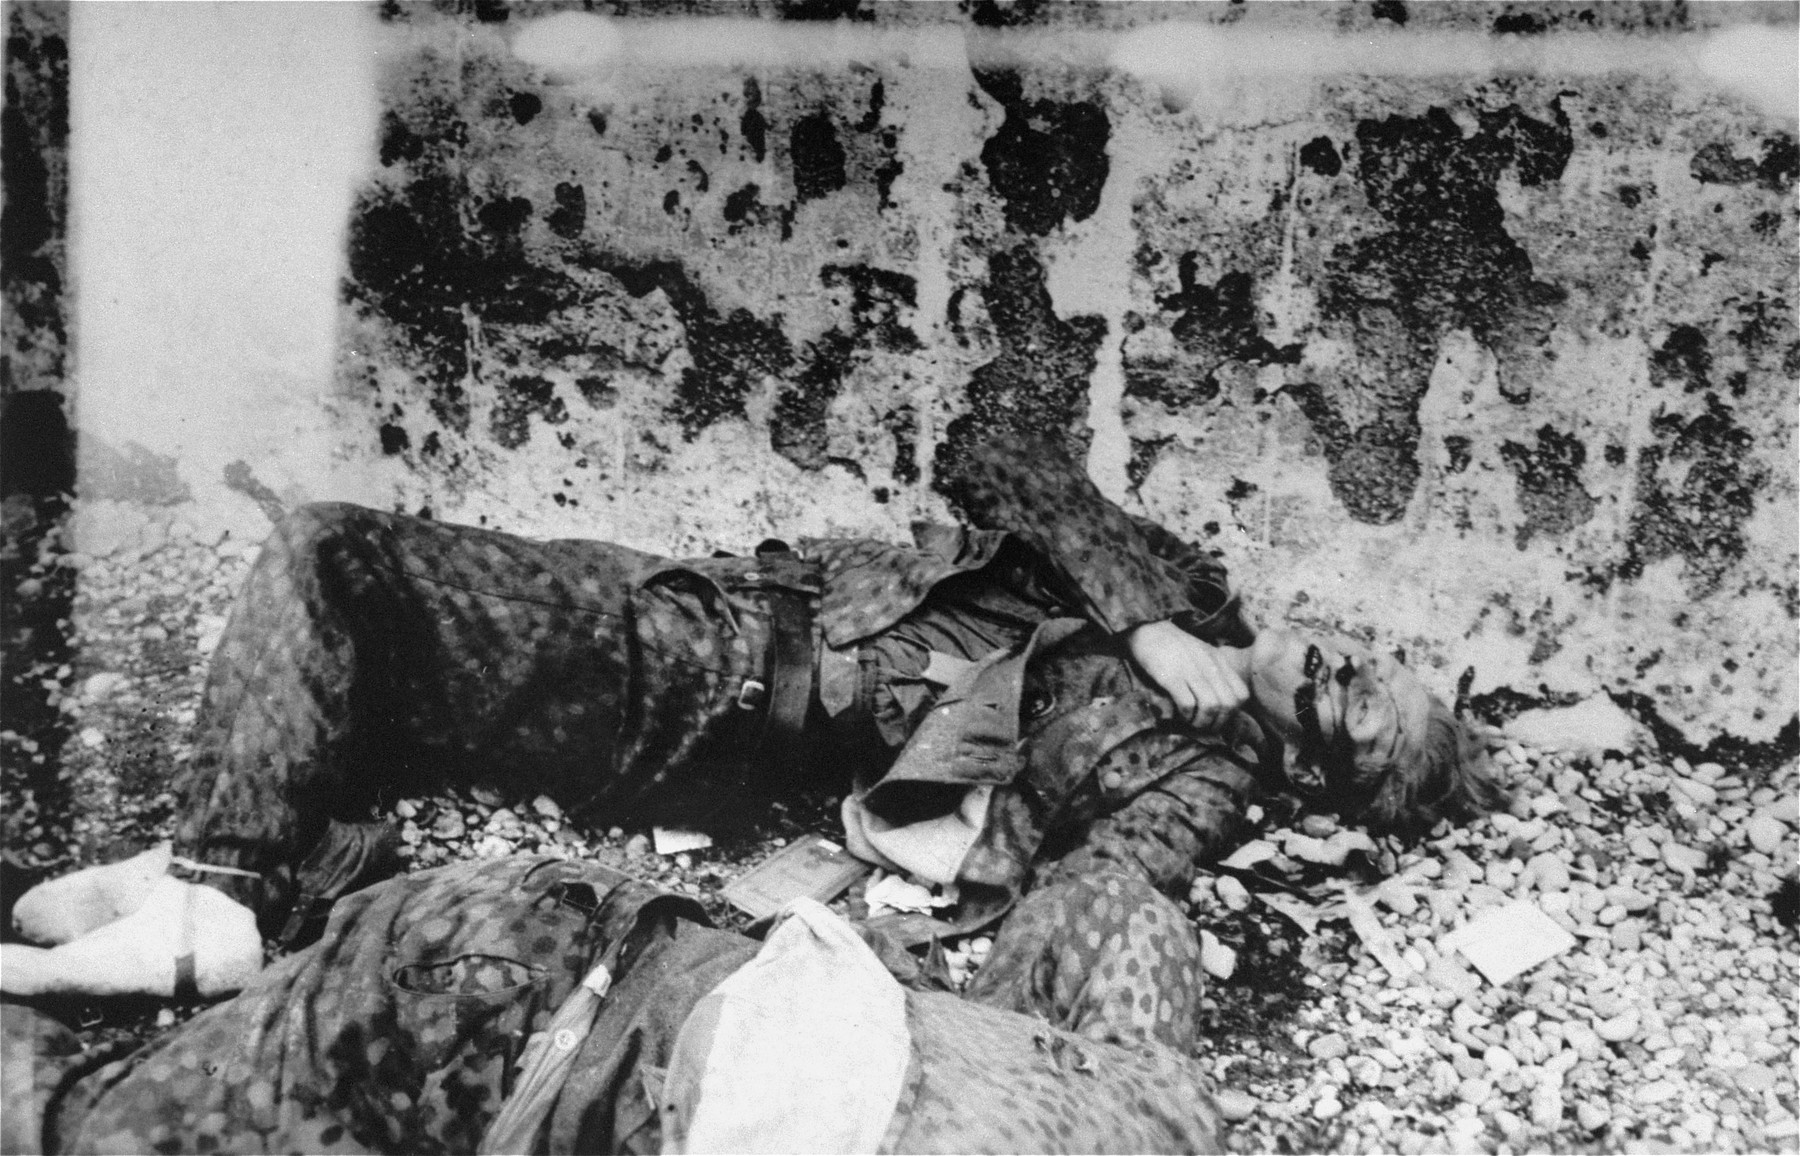 The corpse of an SS guard who was summarily executed in Dachau by U.S. troops.